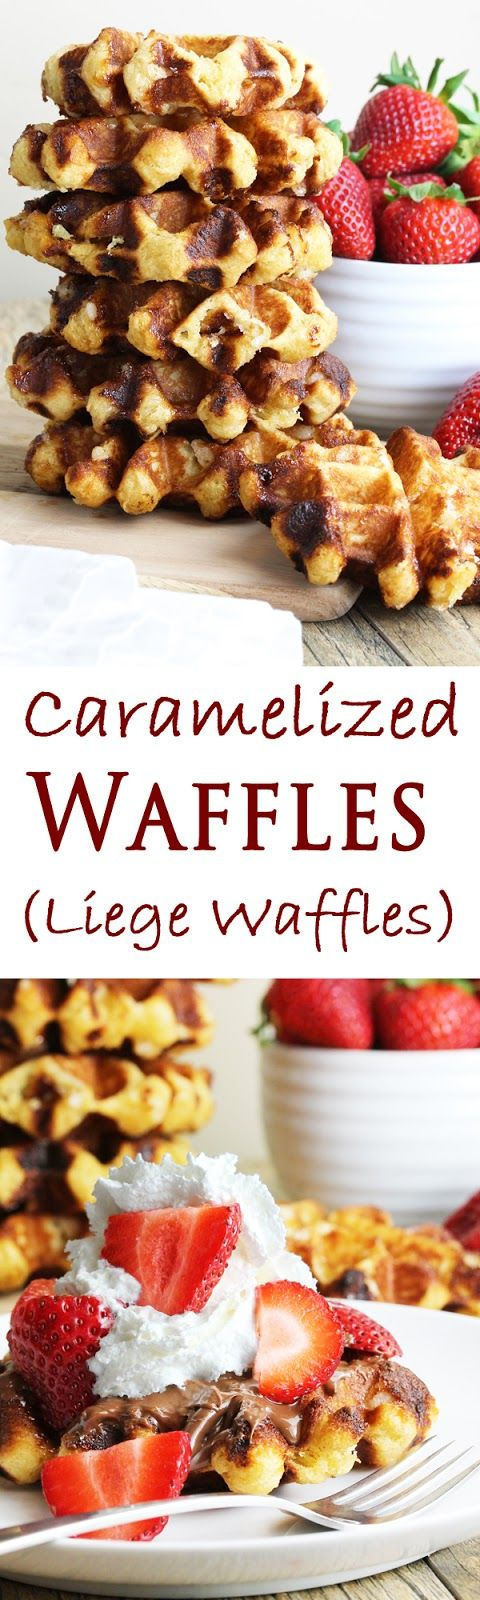 Caramelized Waffles (Liege Waffles). These waffles are caramelized on the outside, and chewy on the inside. Belgian pearl sugar is the key ingredient.(see recipe for DIY pearl sugar - -also on this board!)